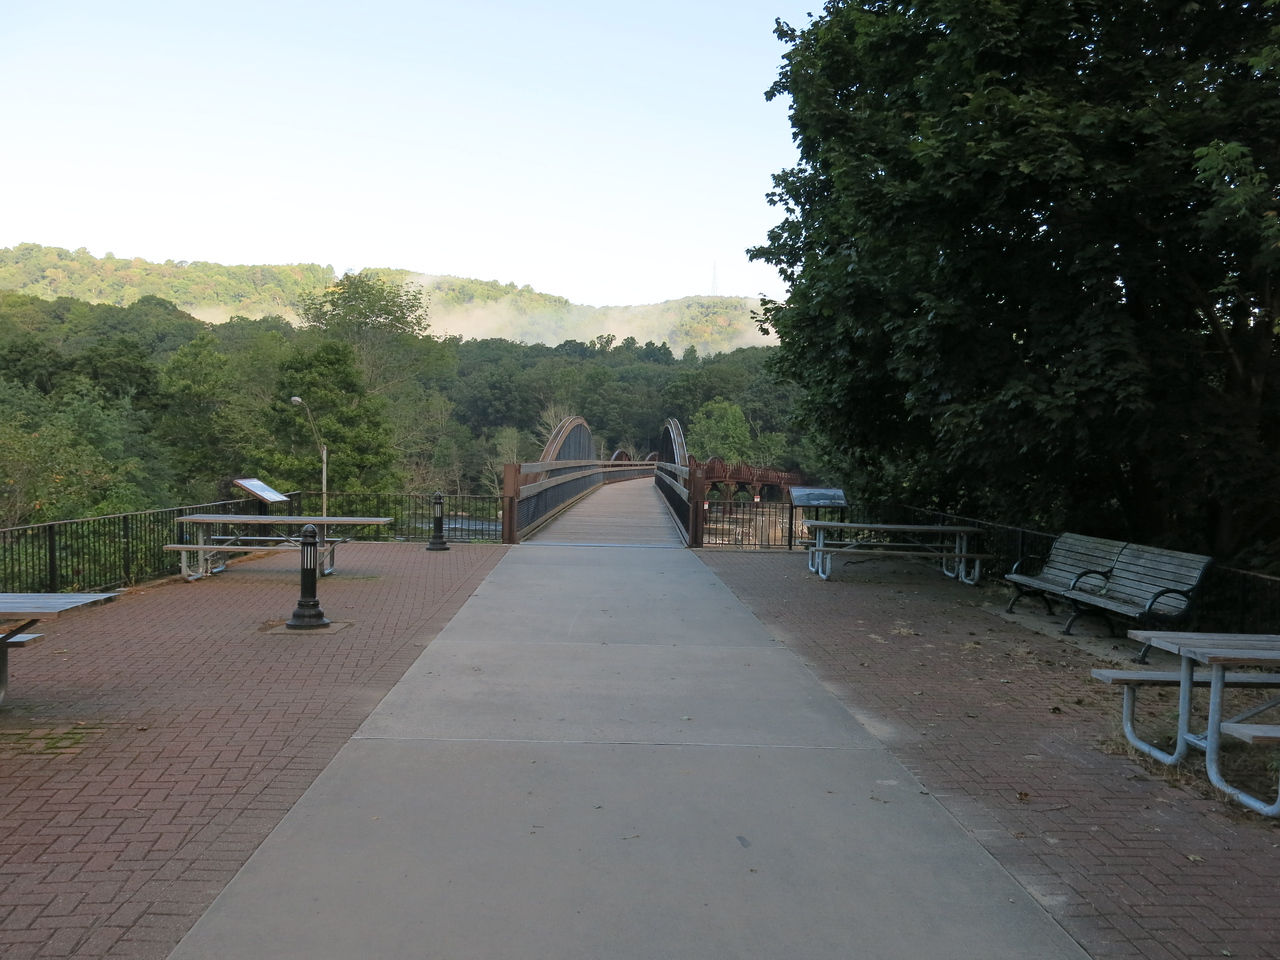 Morning of Day 2, Tuesday, August 30, 2016,  at about MP 71:  View of Low Bridge in Ohiopyle, looking north from the train station